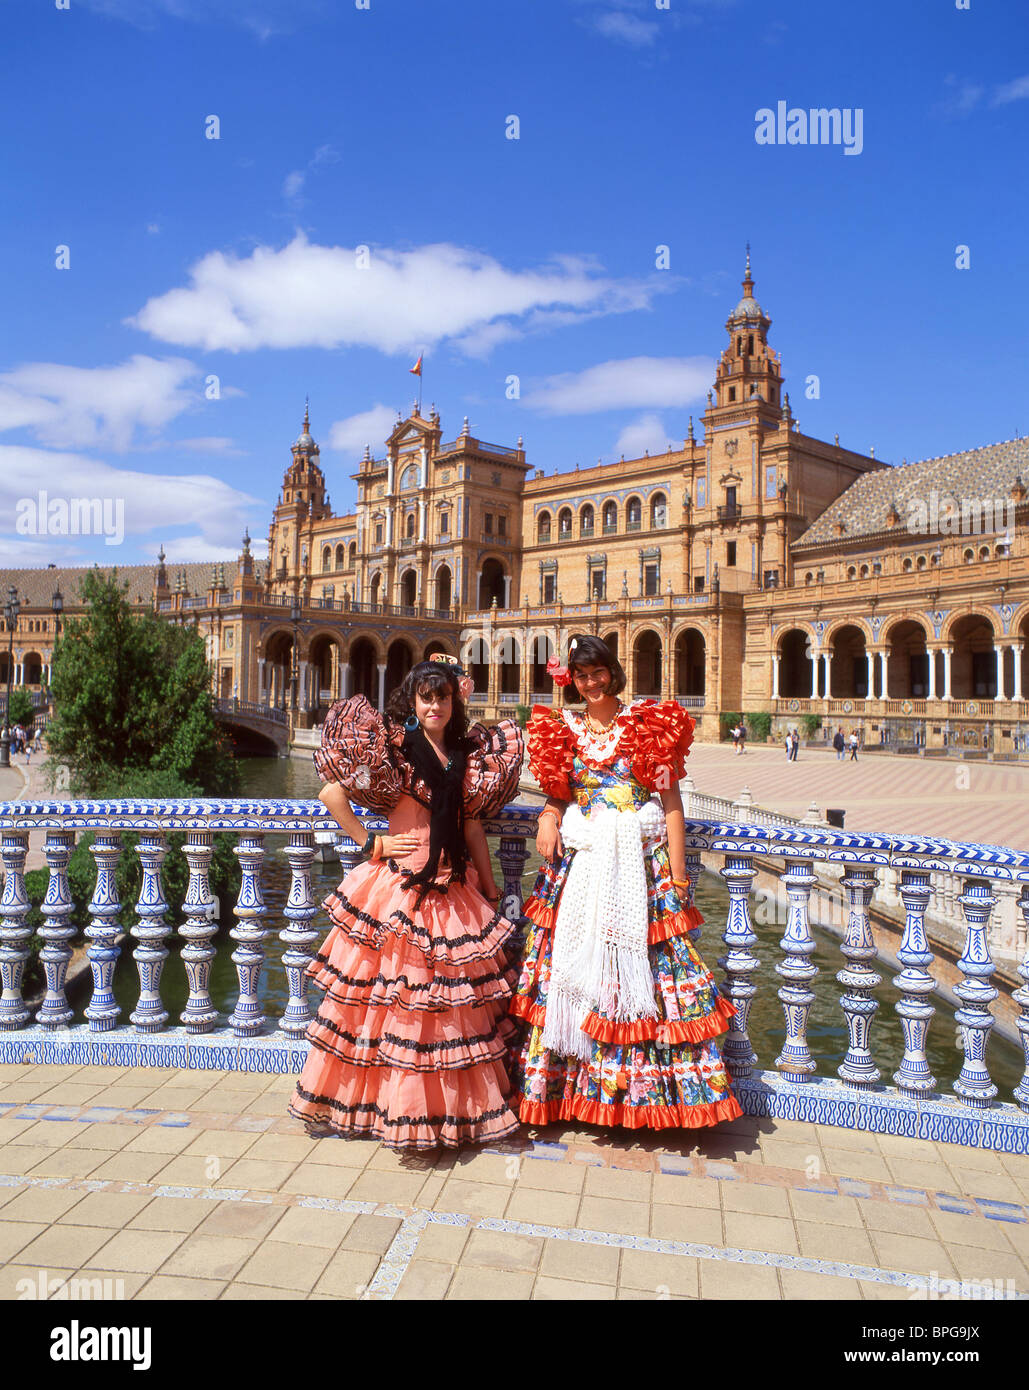 Girls in flamenco dress plaza de espana maria luisa park for Espectaculo flamenco seville sevilla